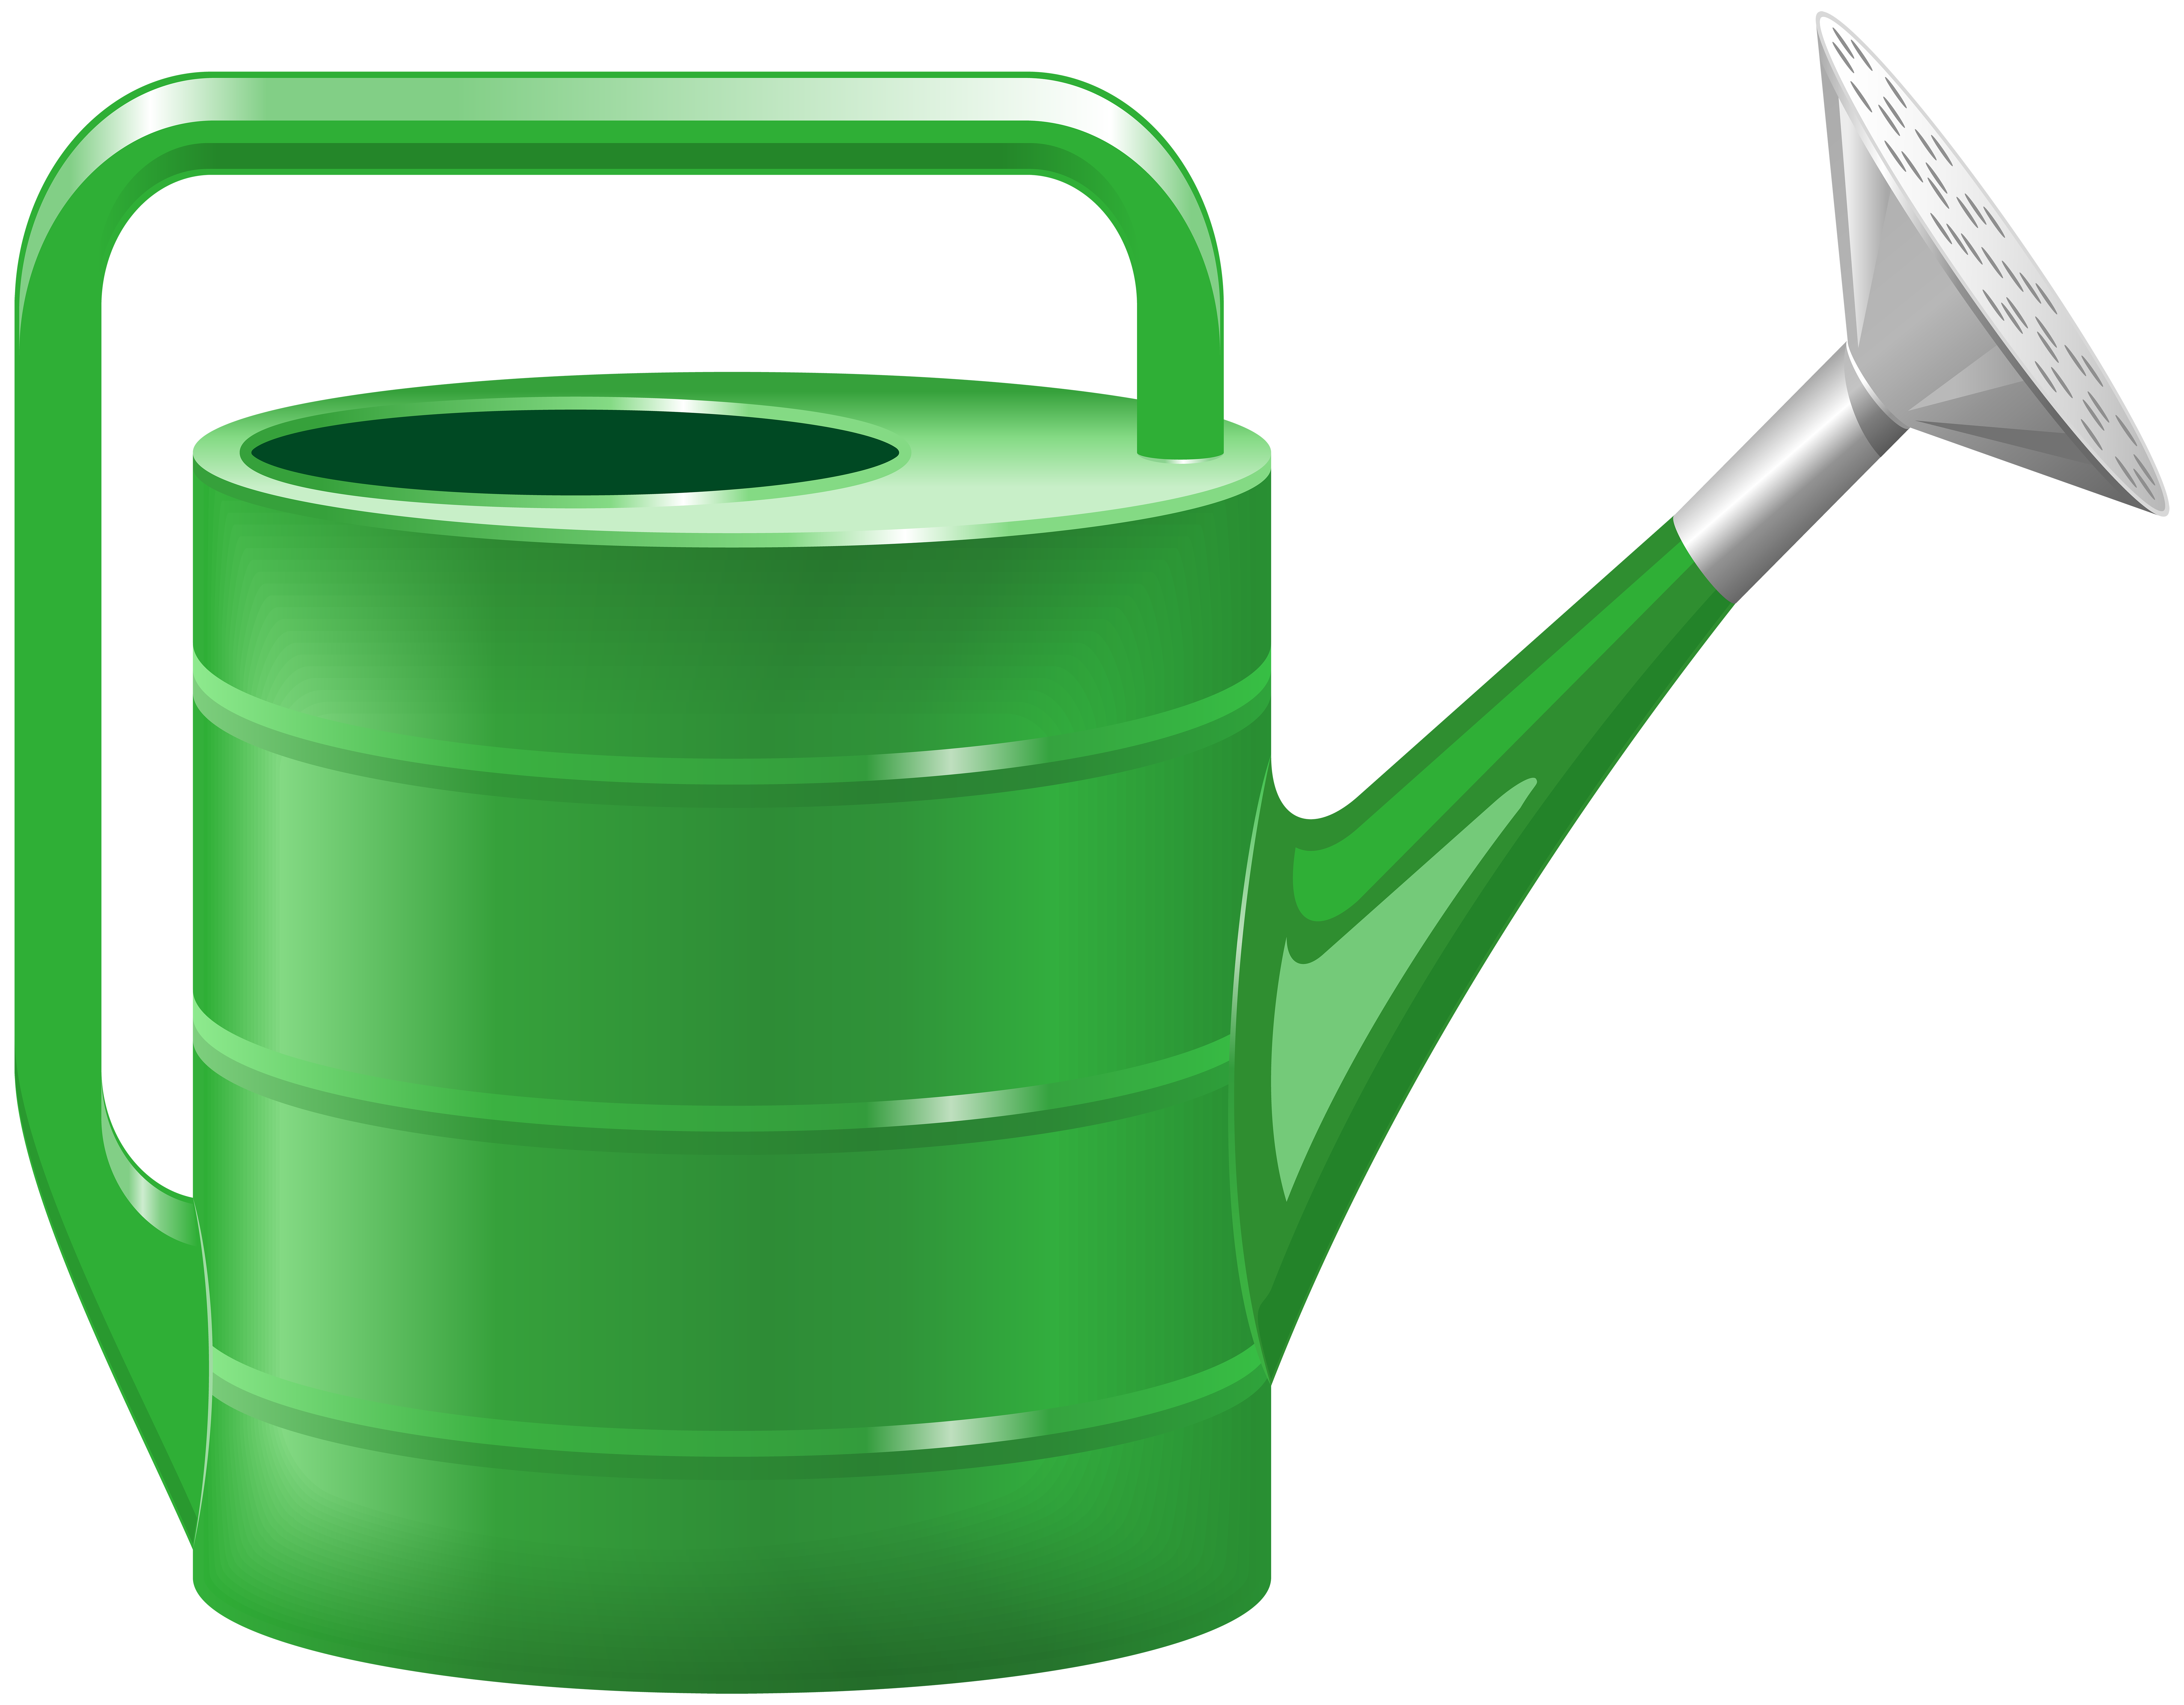 Clipart spring watering can. Png clip art image